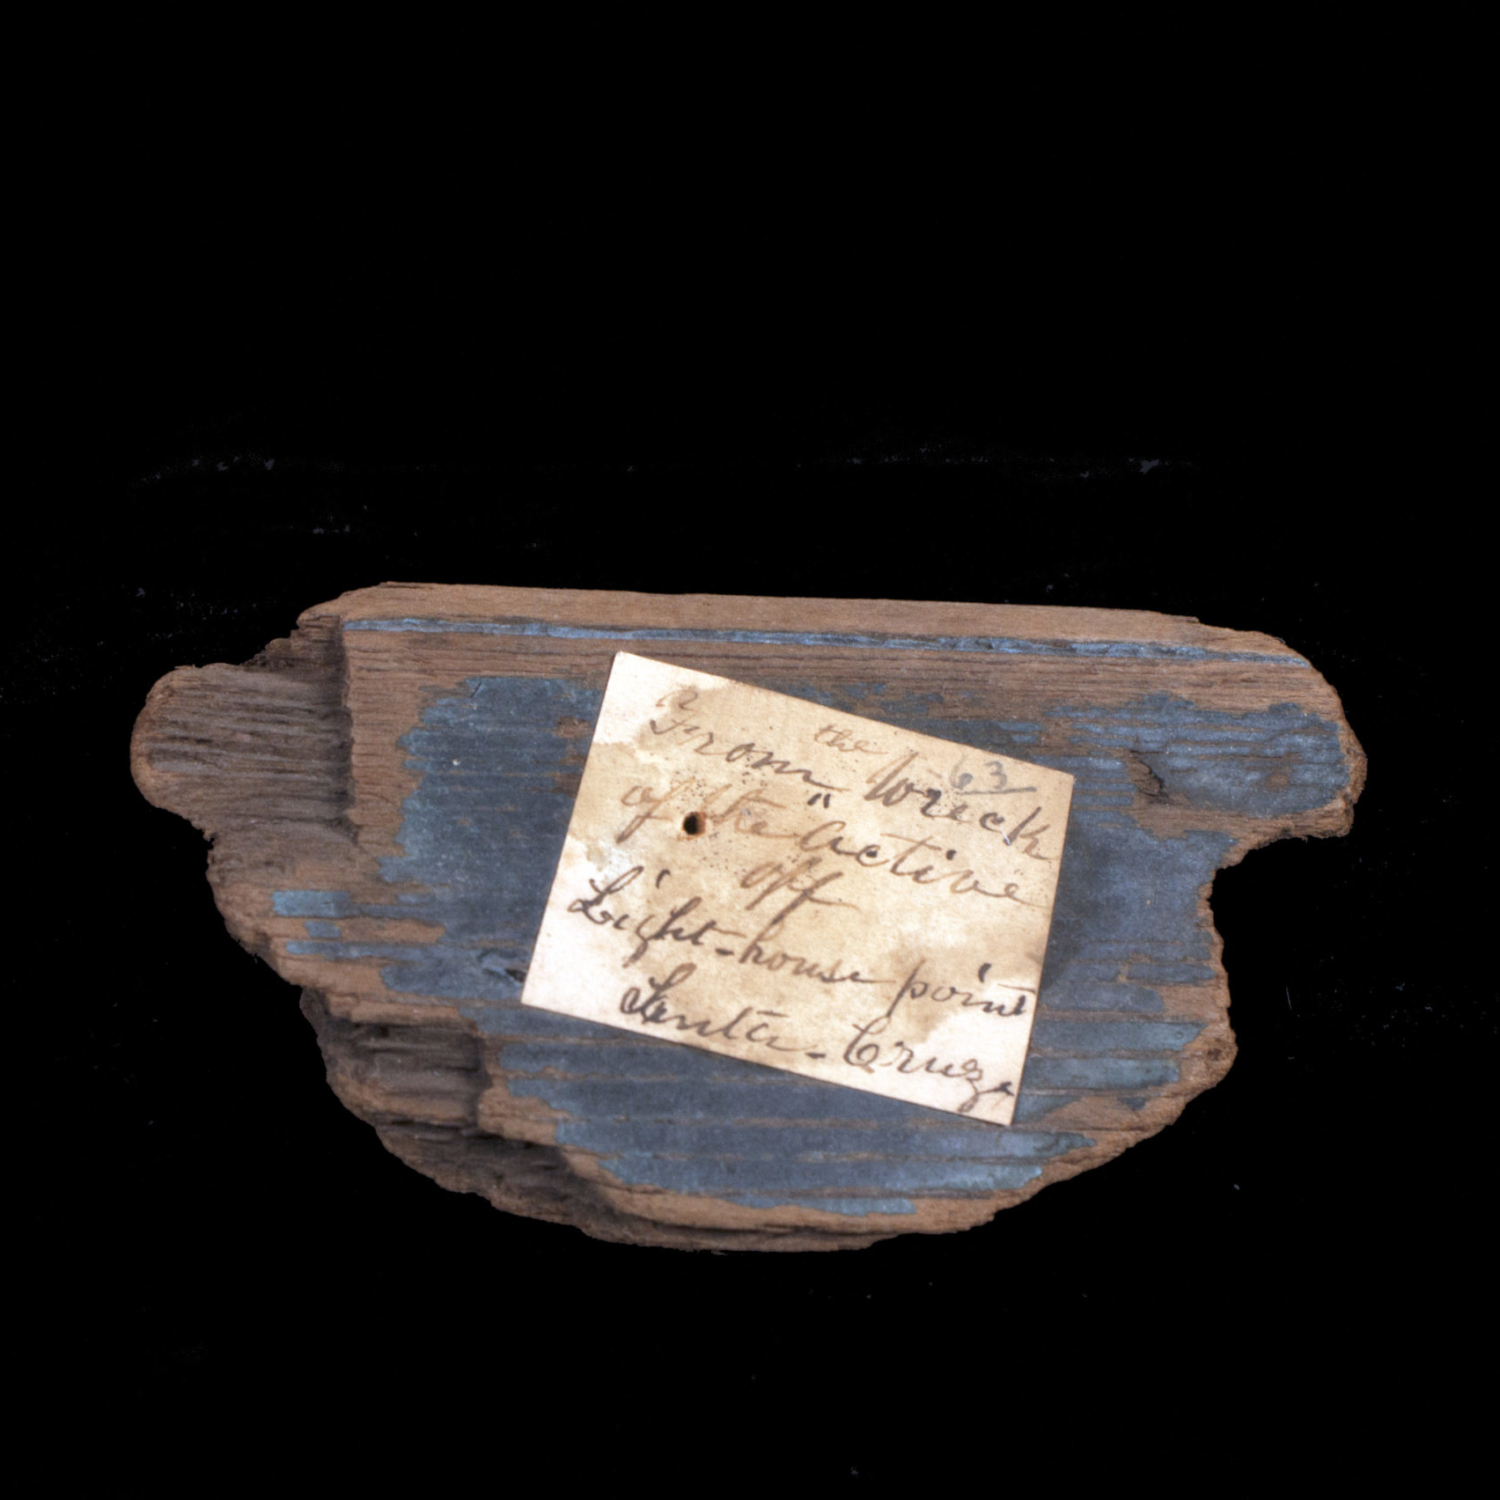 A piece of wood from a ship with a handwritten identification note on it.